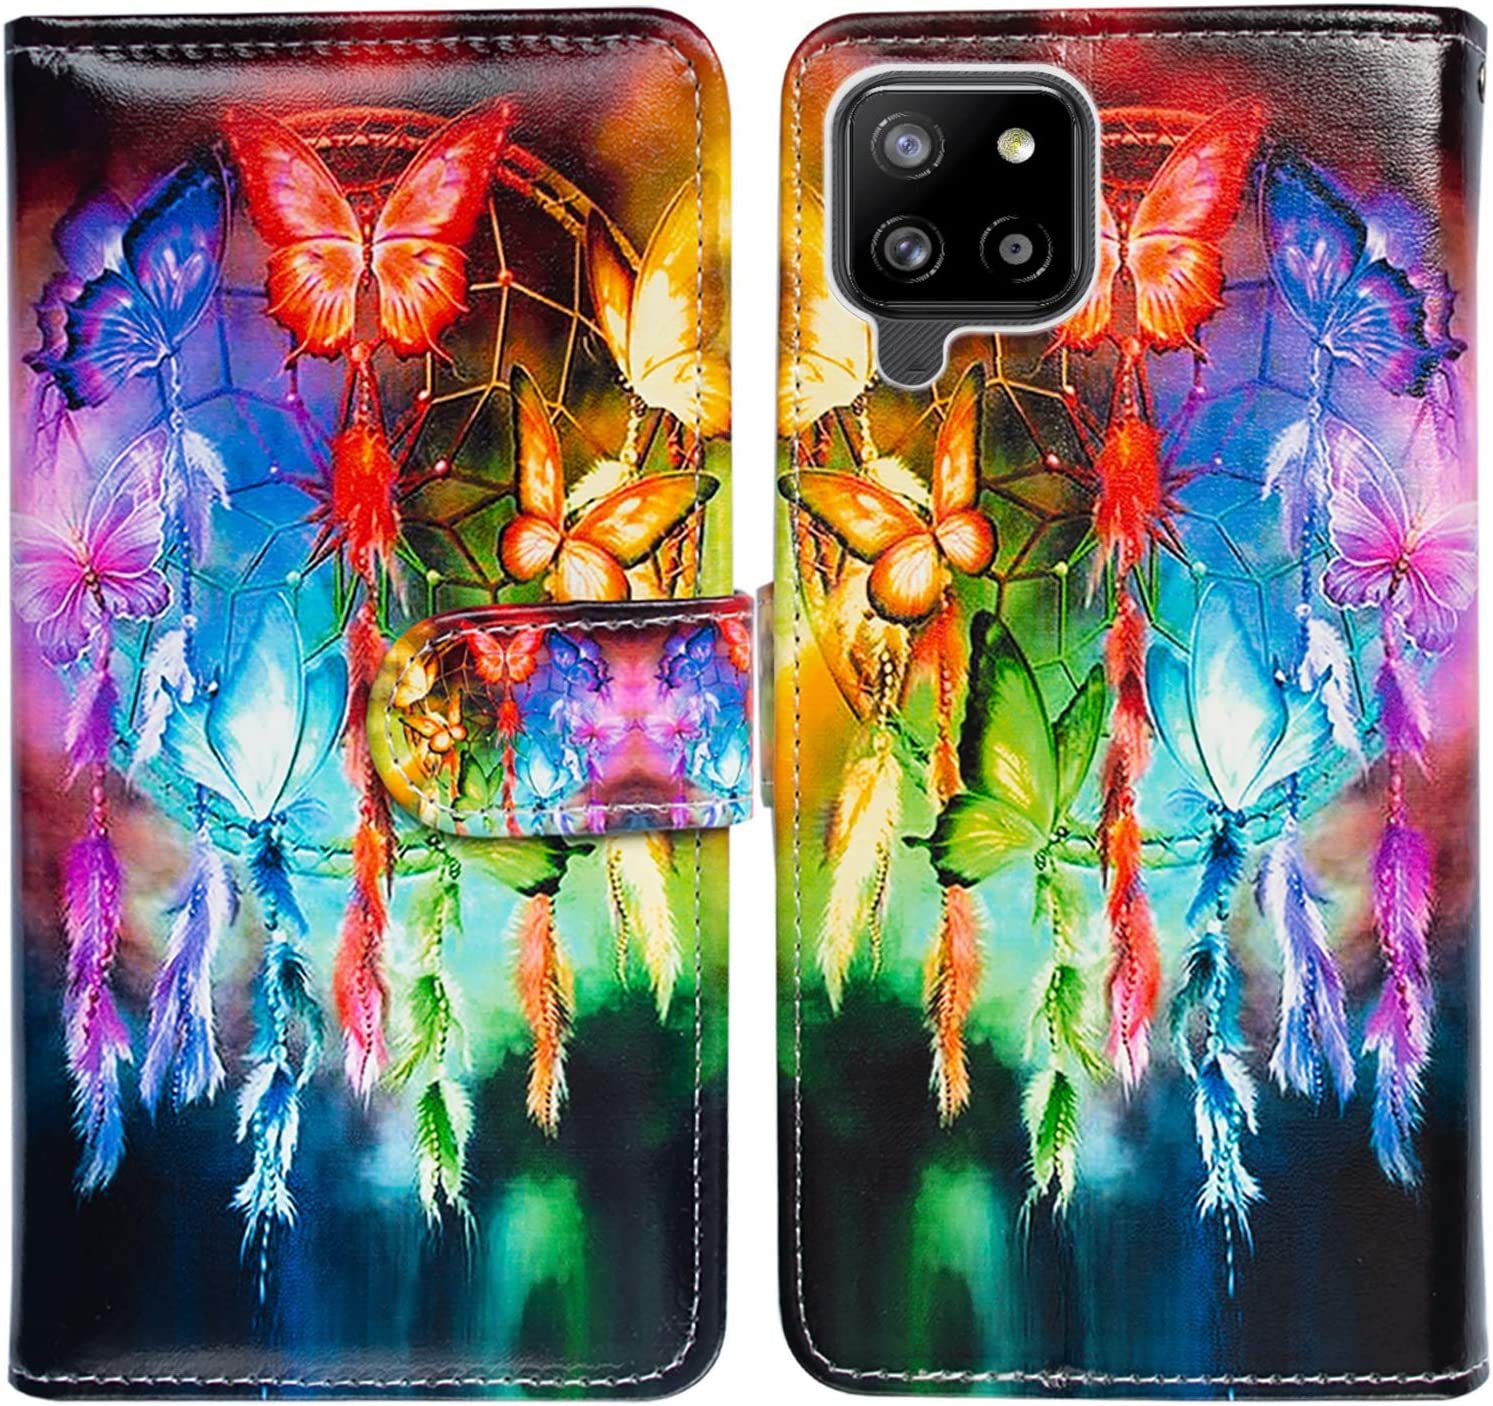 Galaxy A42 5G Case,Bcov Butterfly Dream Catcher Leather Flip Phone Case Wallet Cover with Card Slot Holder Kickstand for Samsung Galaxy A42 5G 2021